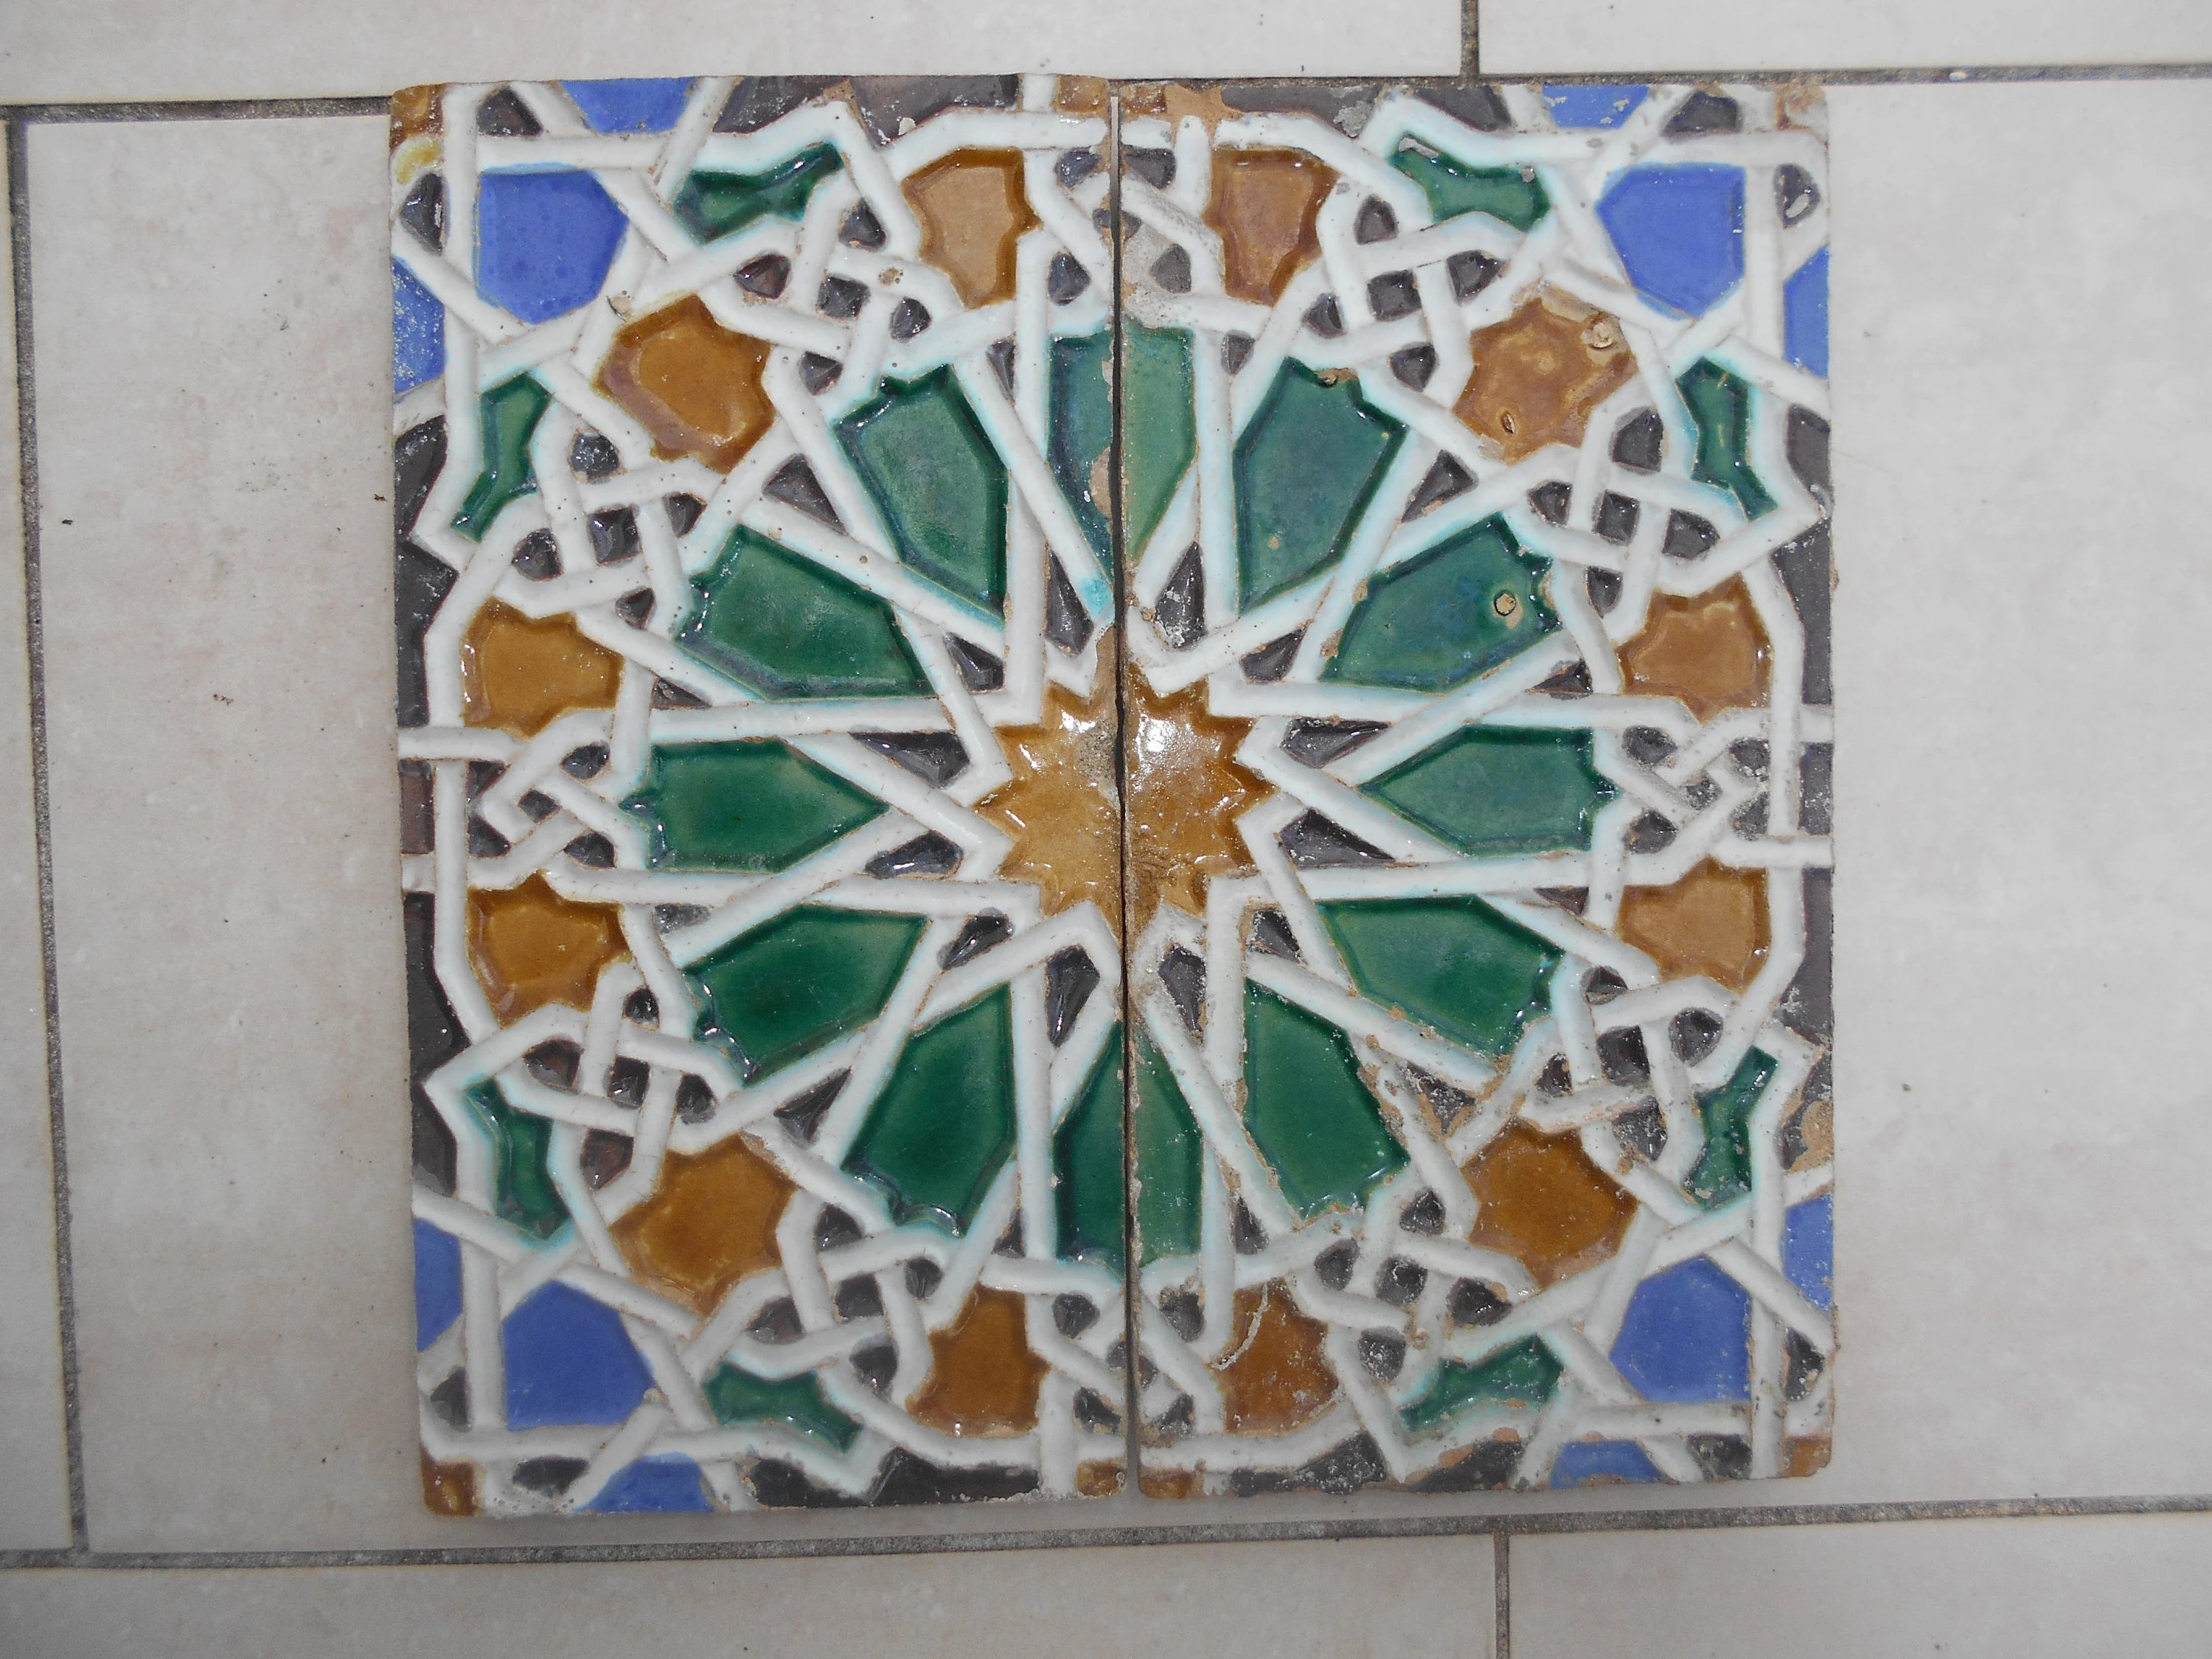 Azulejos Sevilla Pair 2 Azulejos Tiles Antique Spain 19th Century Seville Sevilla Spain Antique Spanish Moorish